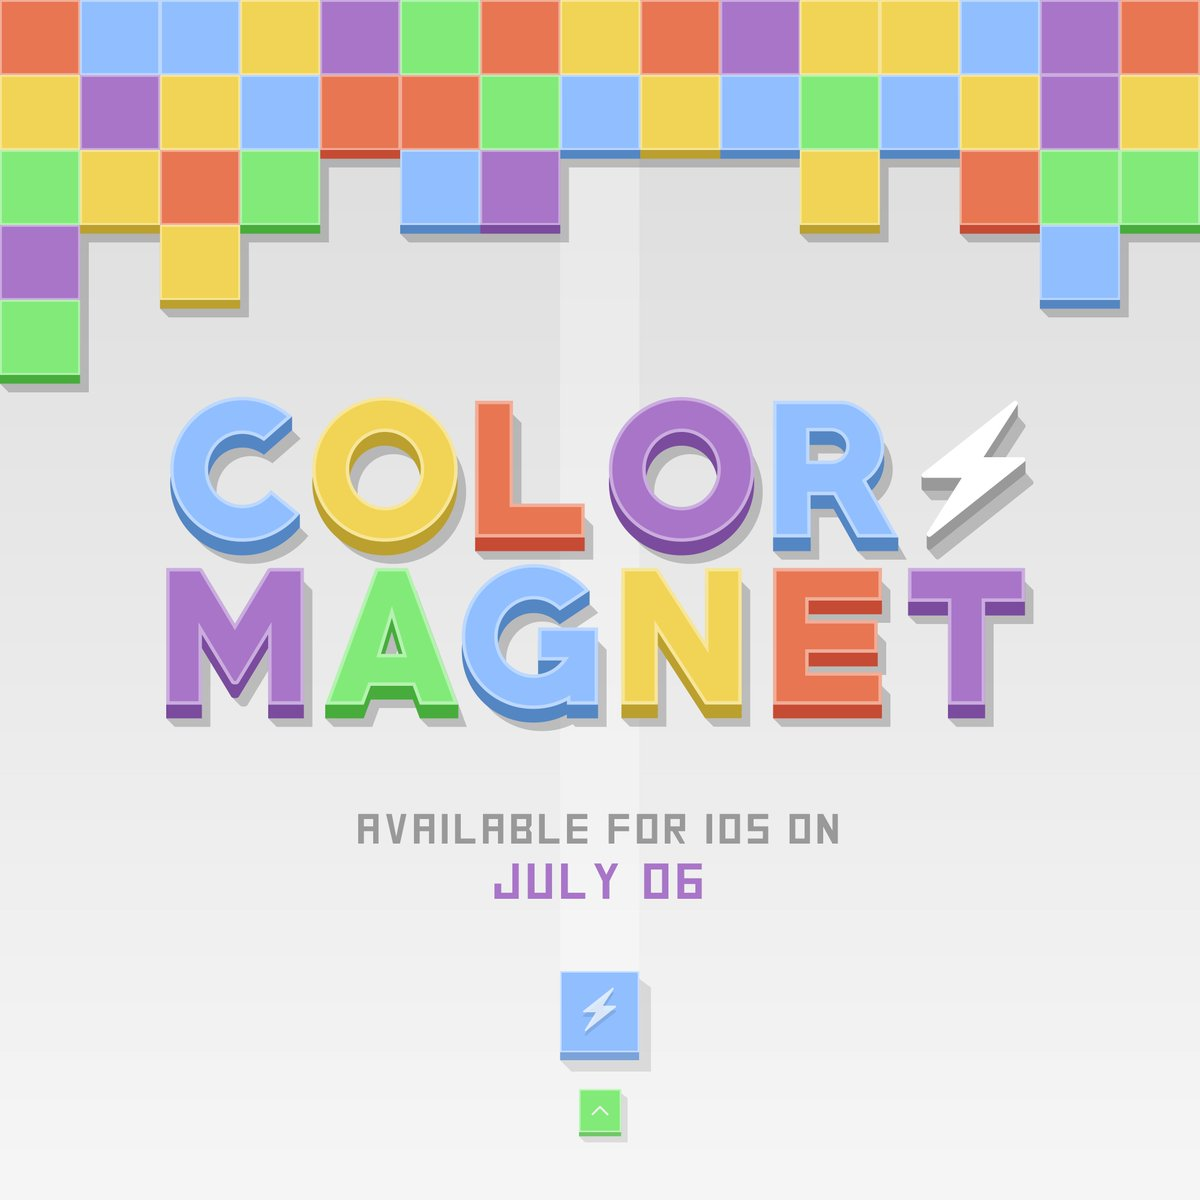 Color Magnet is almost out there!  #top #theonepixel #iosgame #androidgame #gamedev #indiegames #indiedev #colormagnet #gaming #games<br>http://pic.twitter.com/SSTOvtRXZu